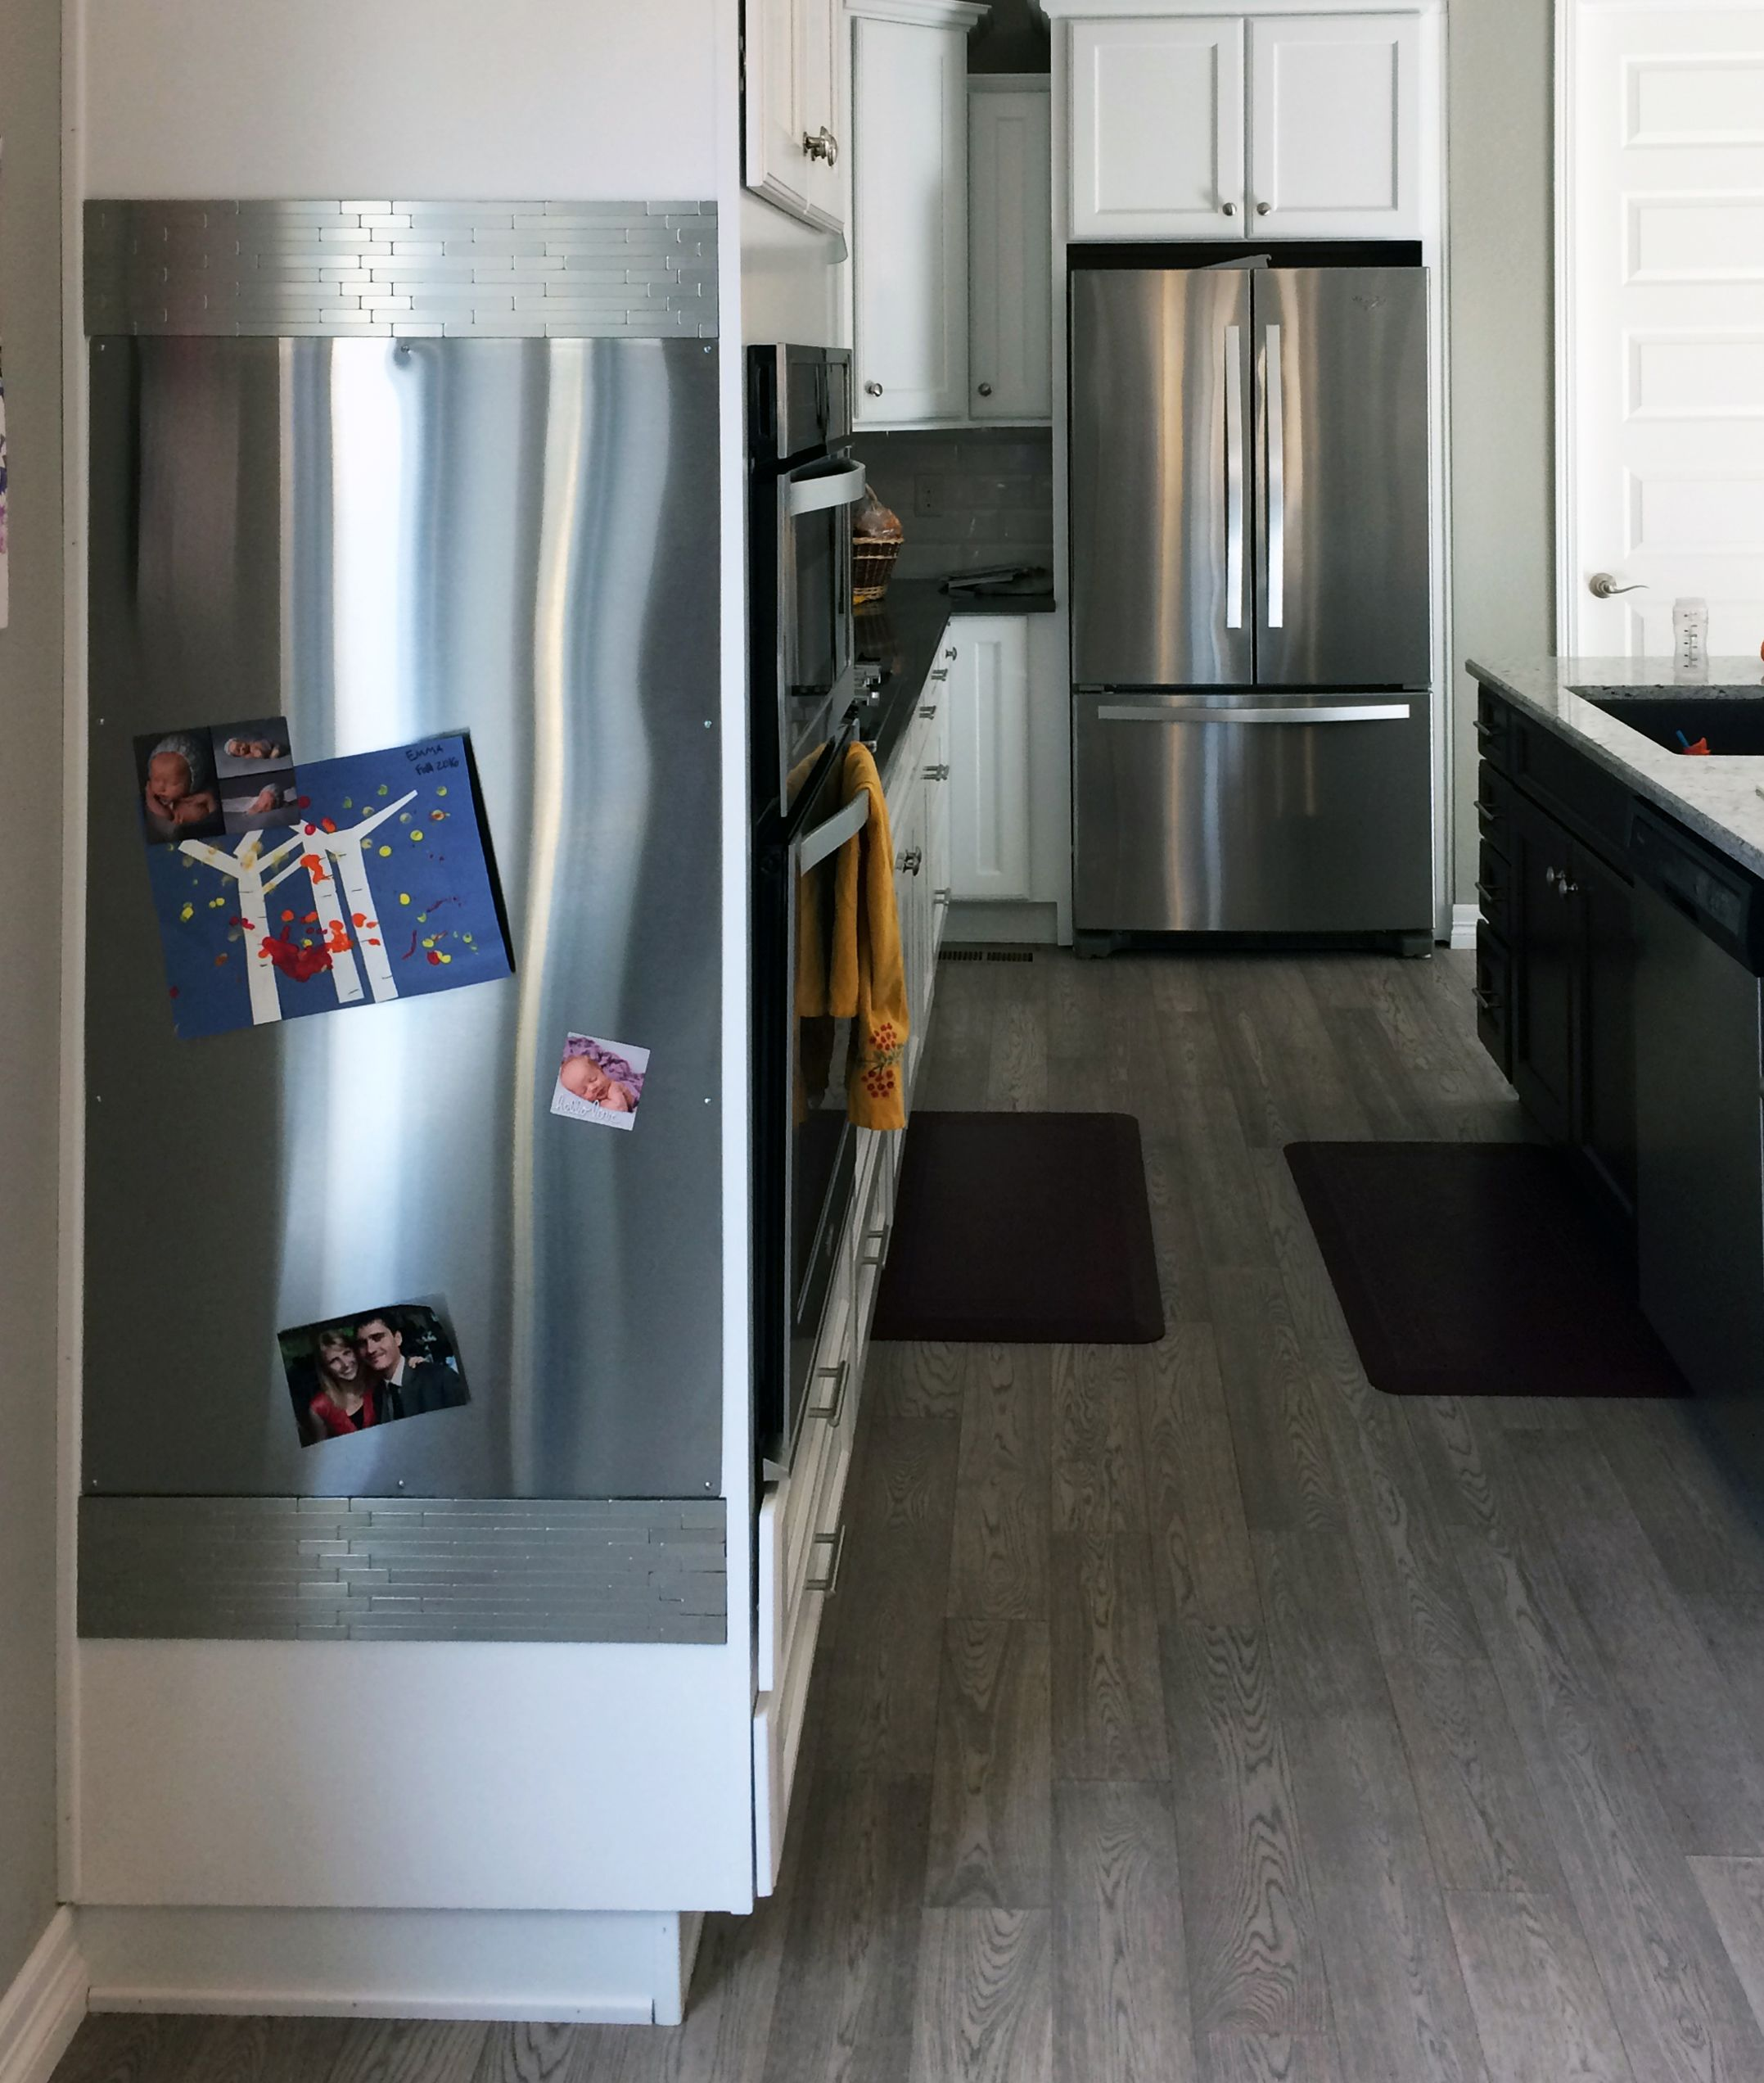 Magnetic Panel Used In Kitchen On Side Of Cabinet In Place Of Fridge Magnetic Panels Magnetic Board Kitchen Contemporary Kitchen Design